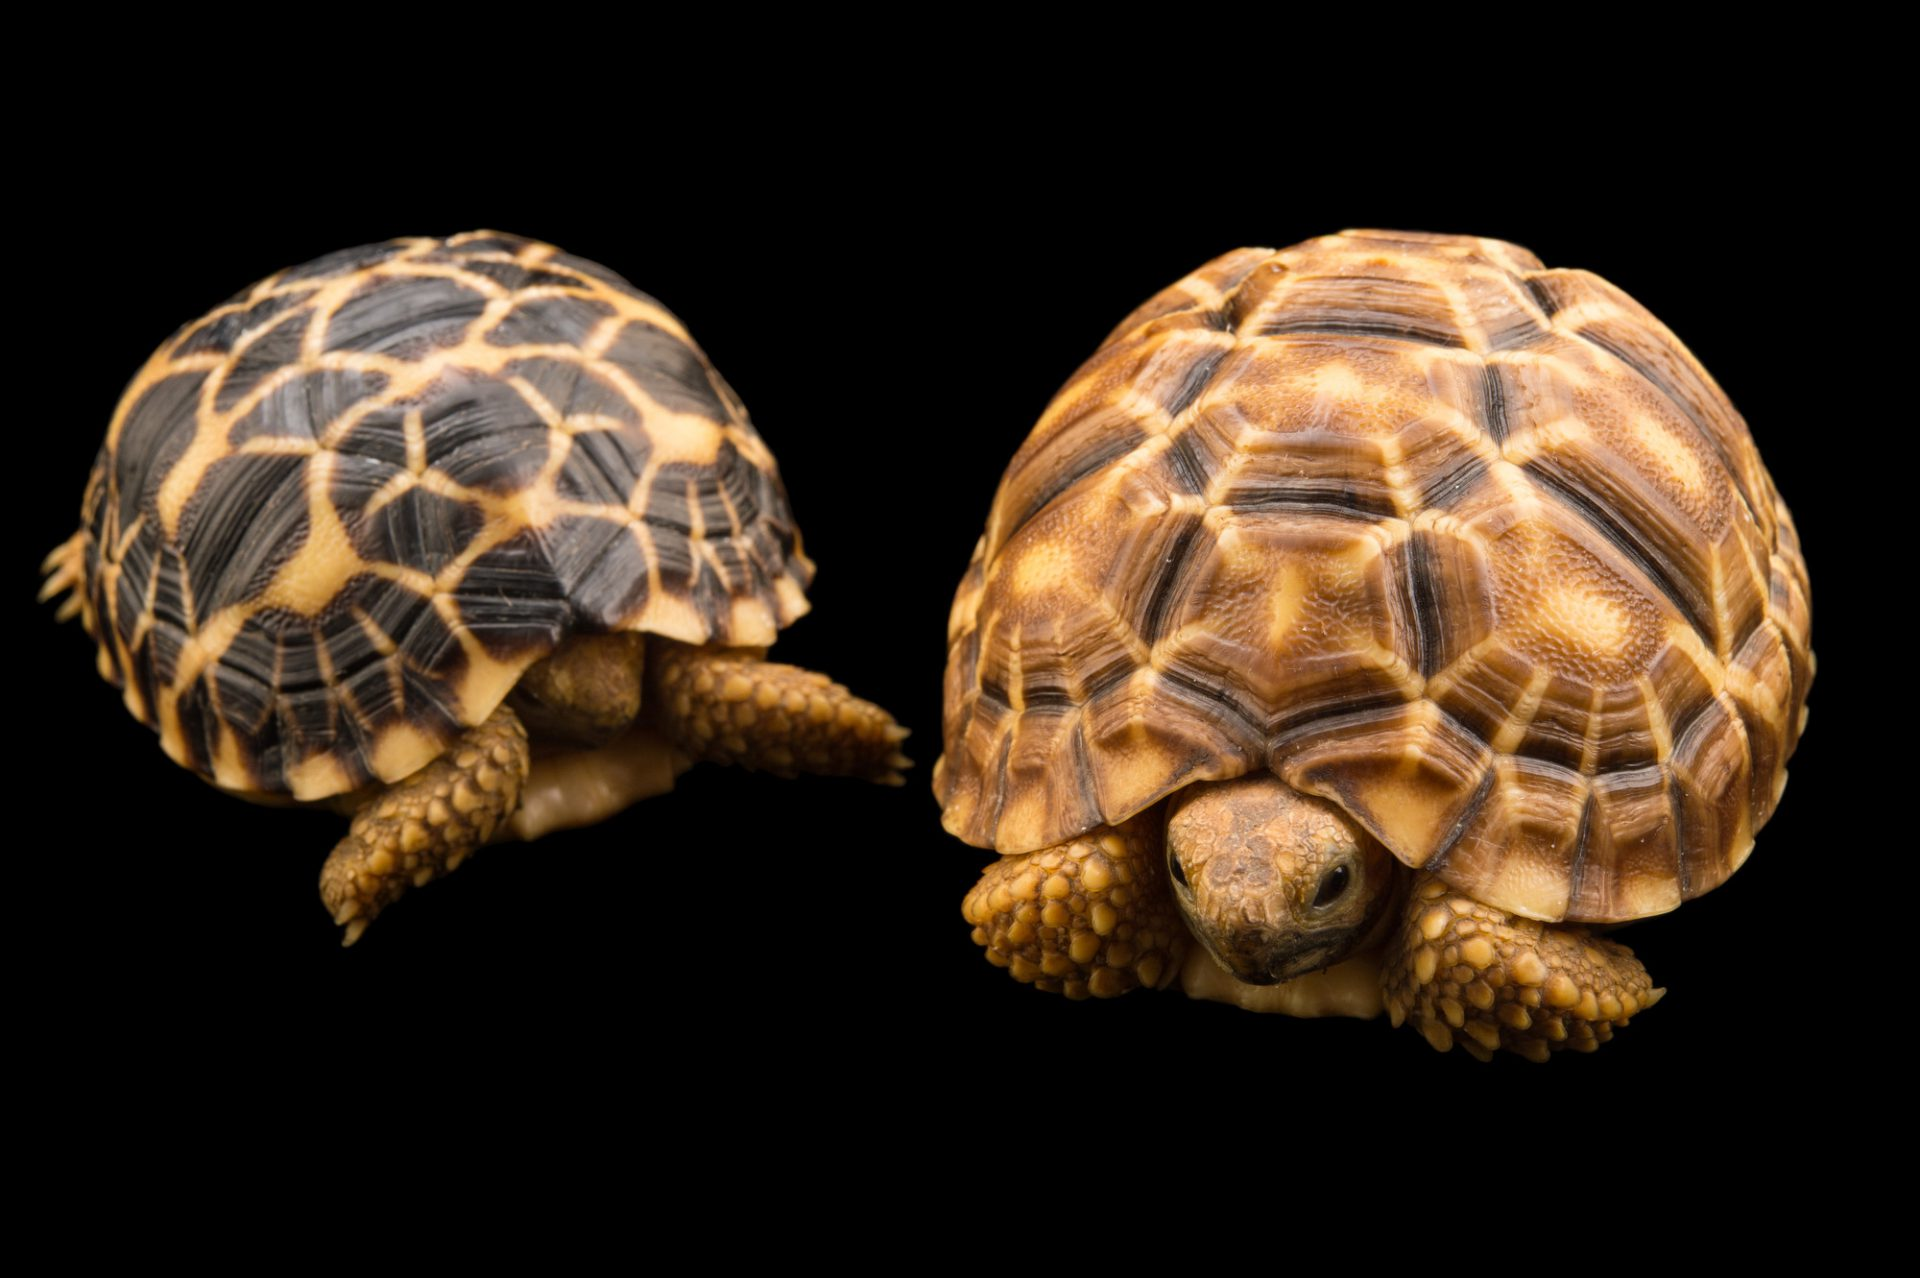 Picture of critically endangered, yearling Burmese star tortoises (Geochelone platynota) at the Turtle Conservancy.